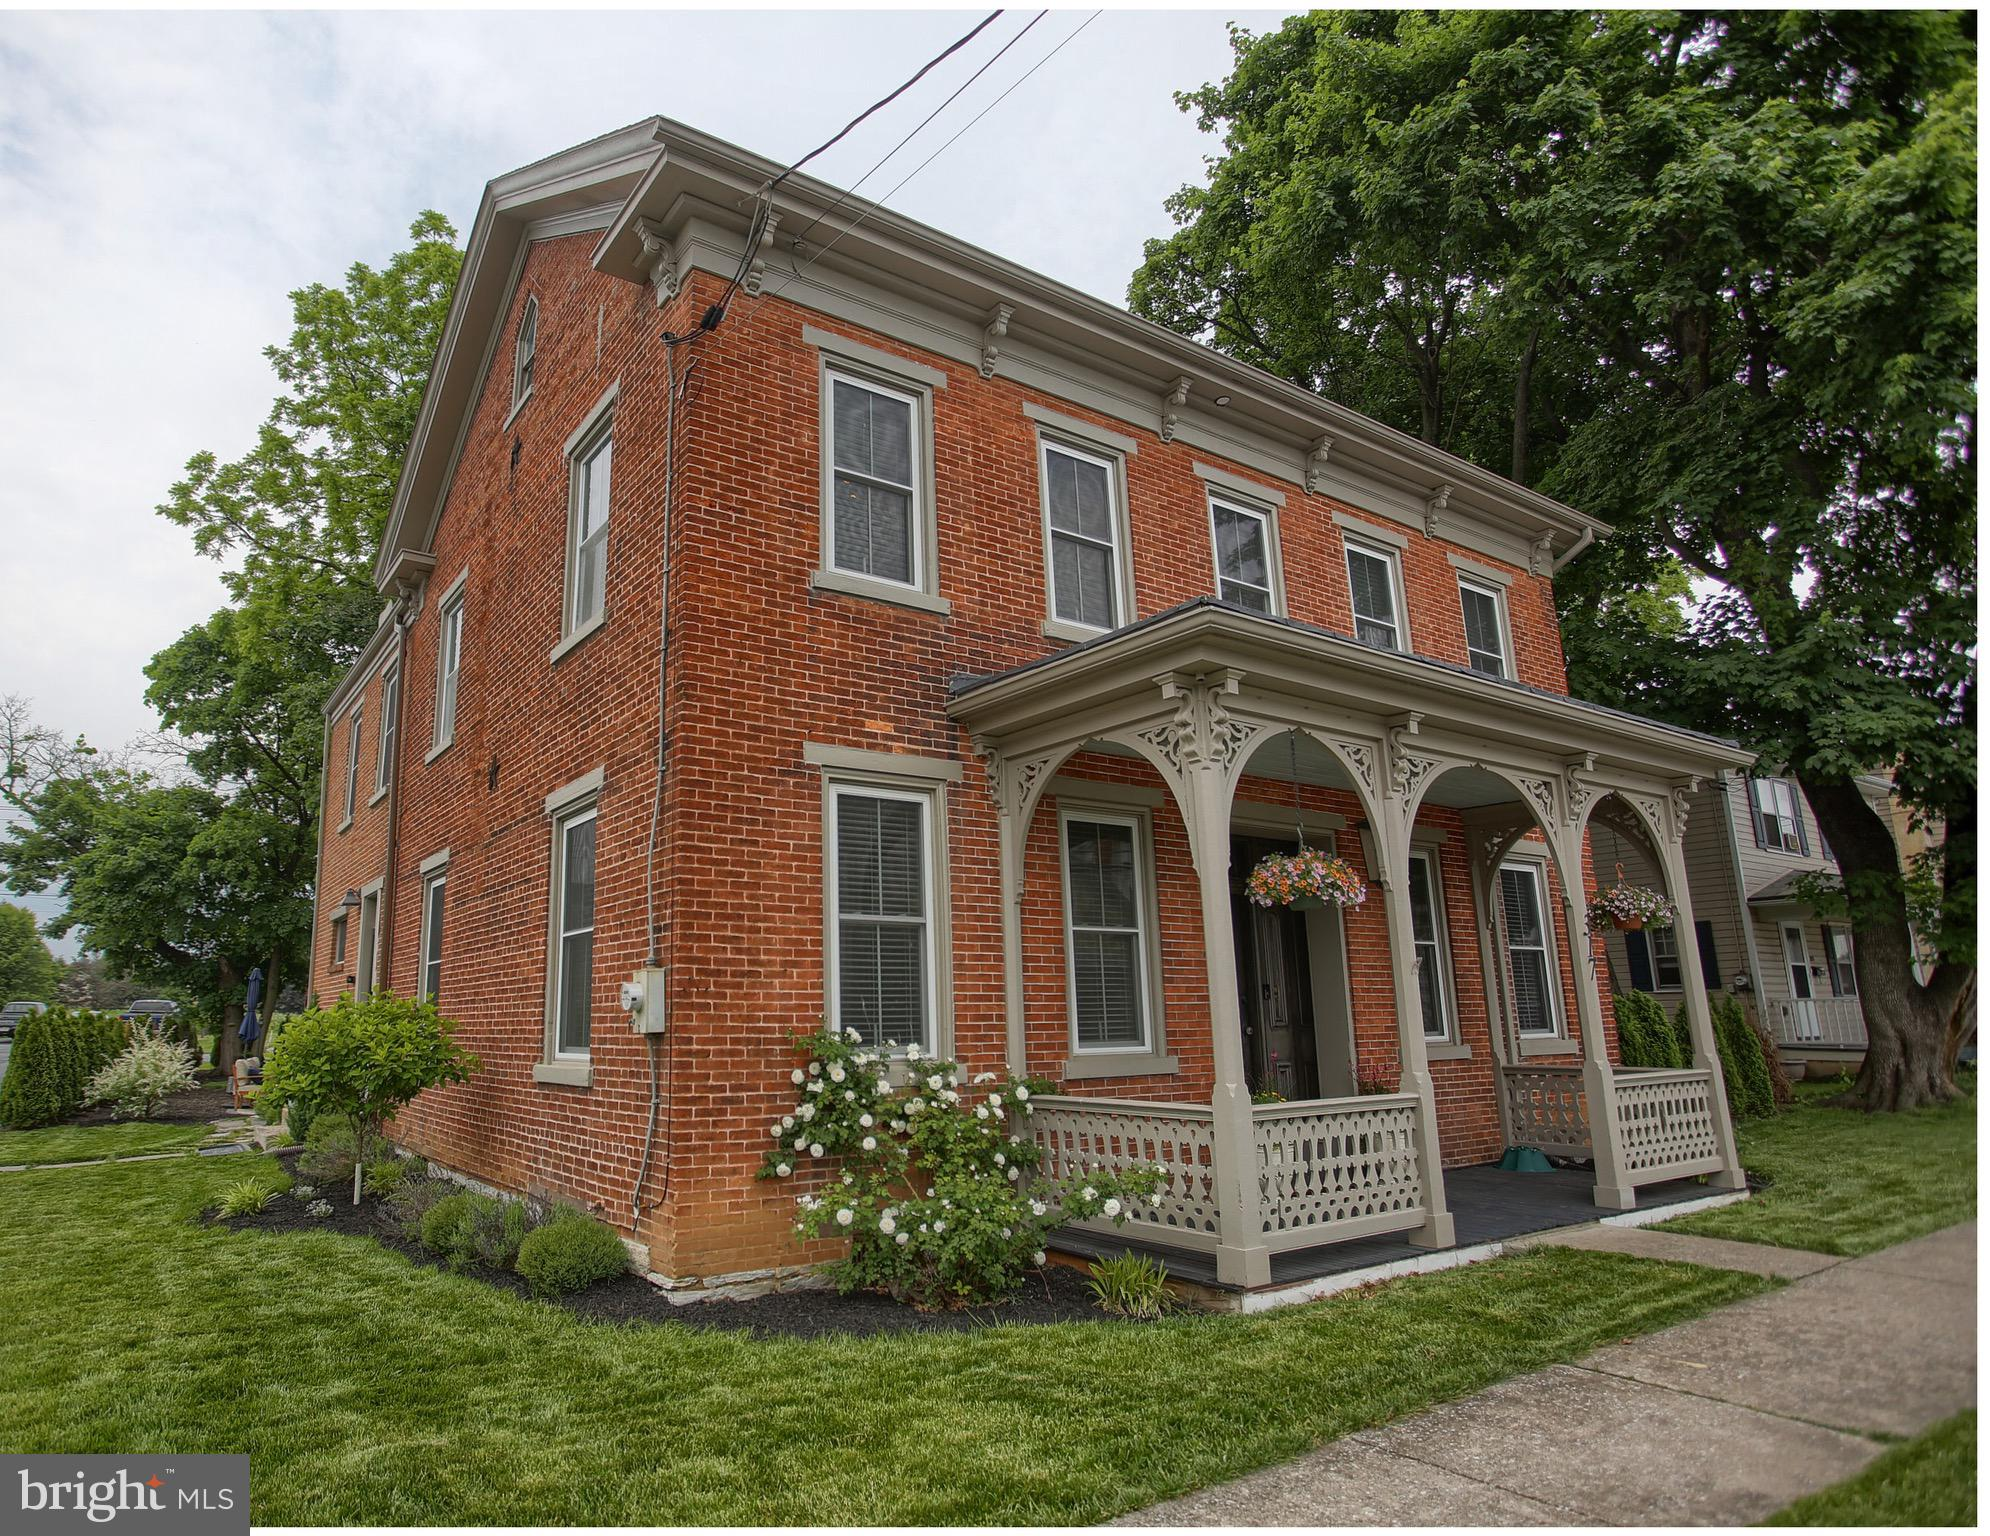 317 E DERRY ROAD, HERSHEY, PA 17033